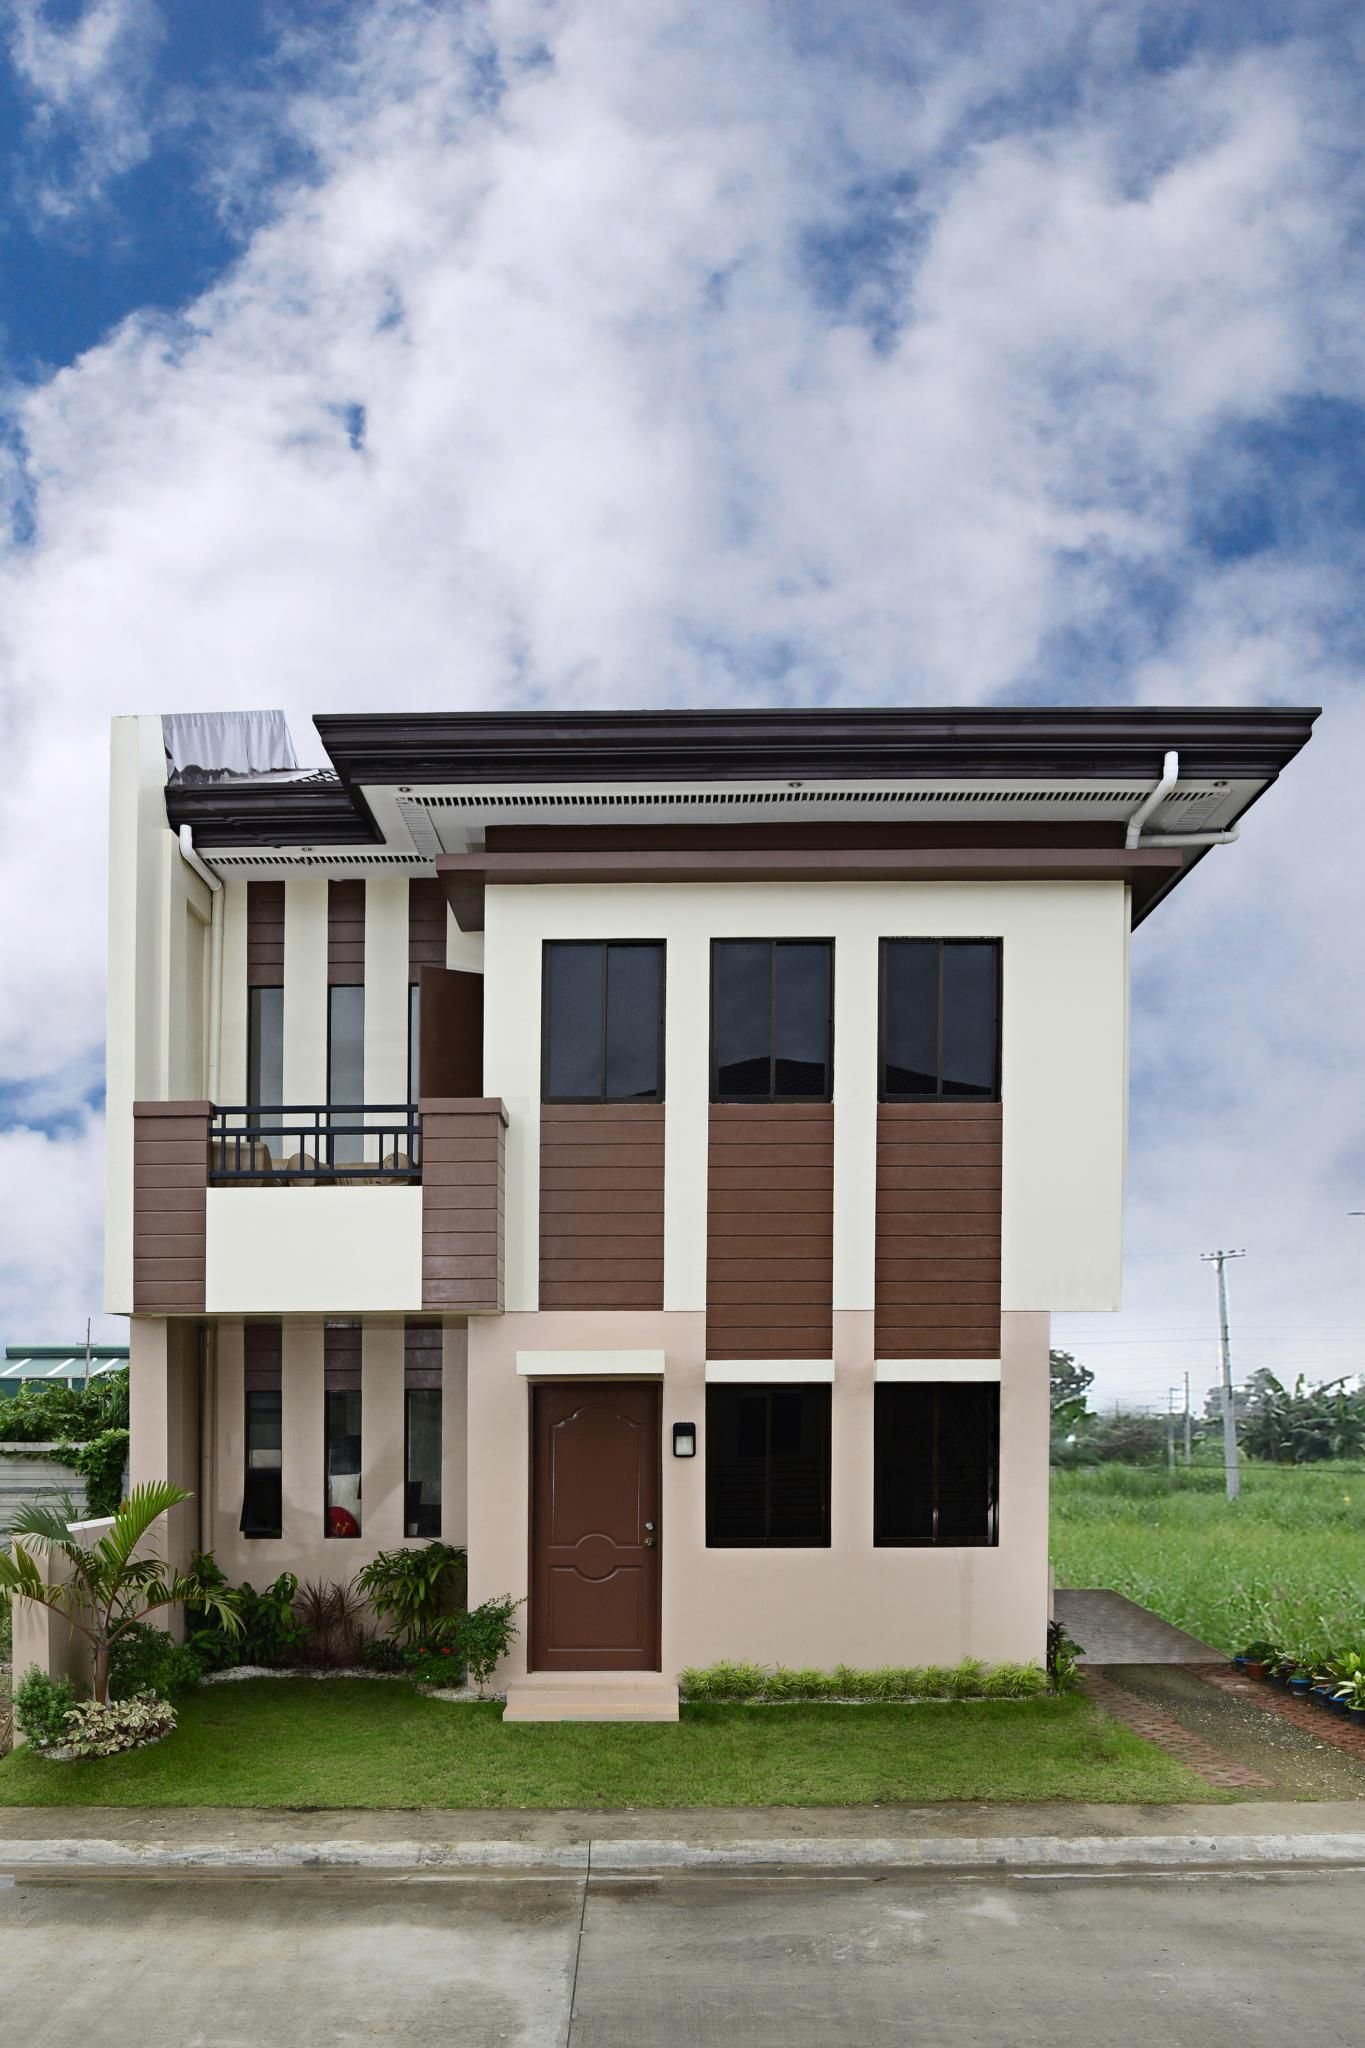 Adrinahappiness single attached 2 storey 4 bedrooms 2 toilet